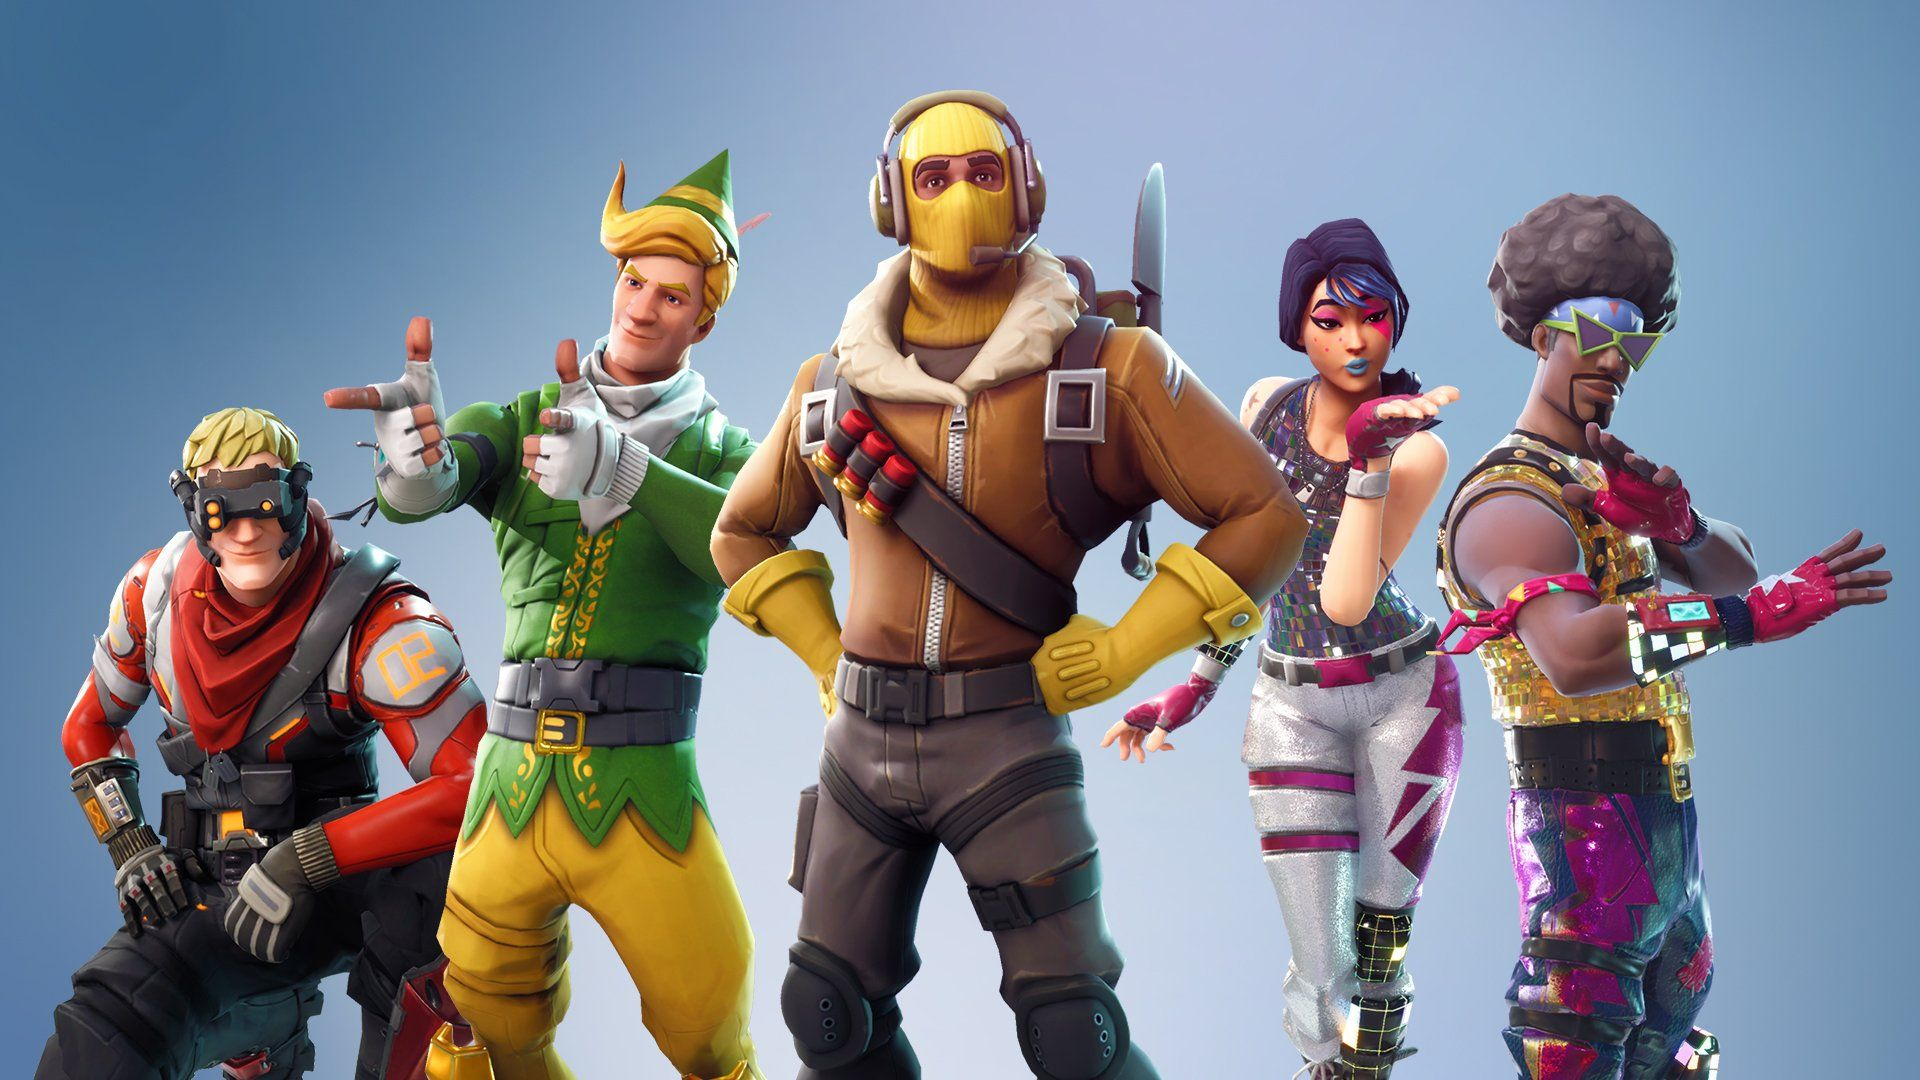 Fortnite Iphone Wallpaper Images Background Images Wallpapers Best Gaming Wallpapers